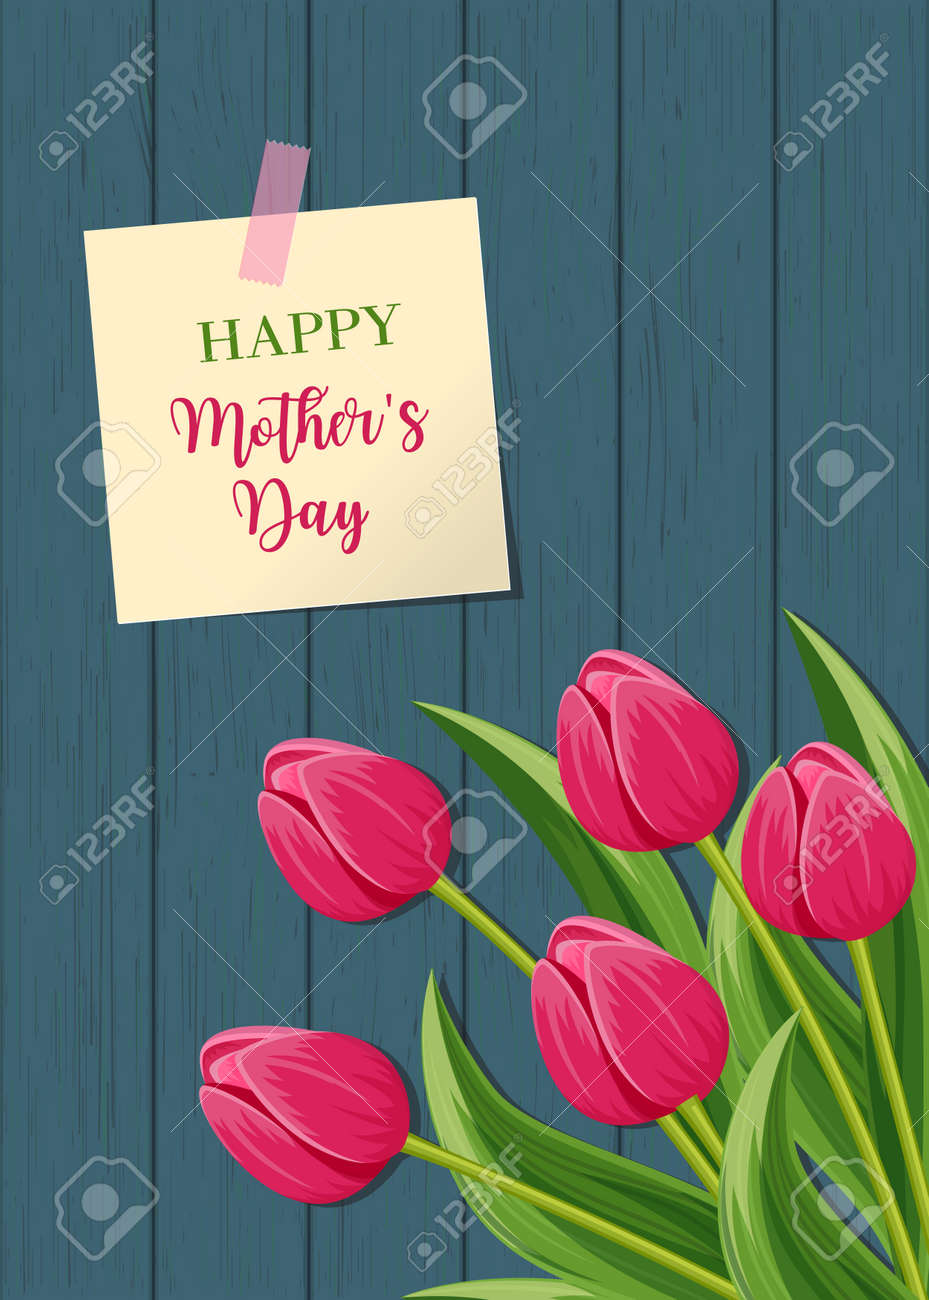 Happy mothers day greeting card with pink blooming tulip flower happy mothers day greeting card with pink blooming tulip flower on wooden background vector illustration kristyandbryce Choice Image